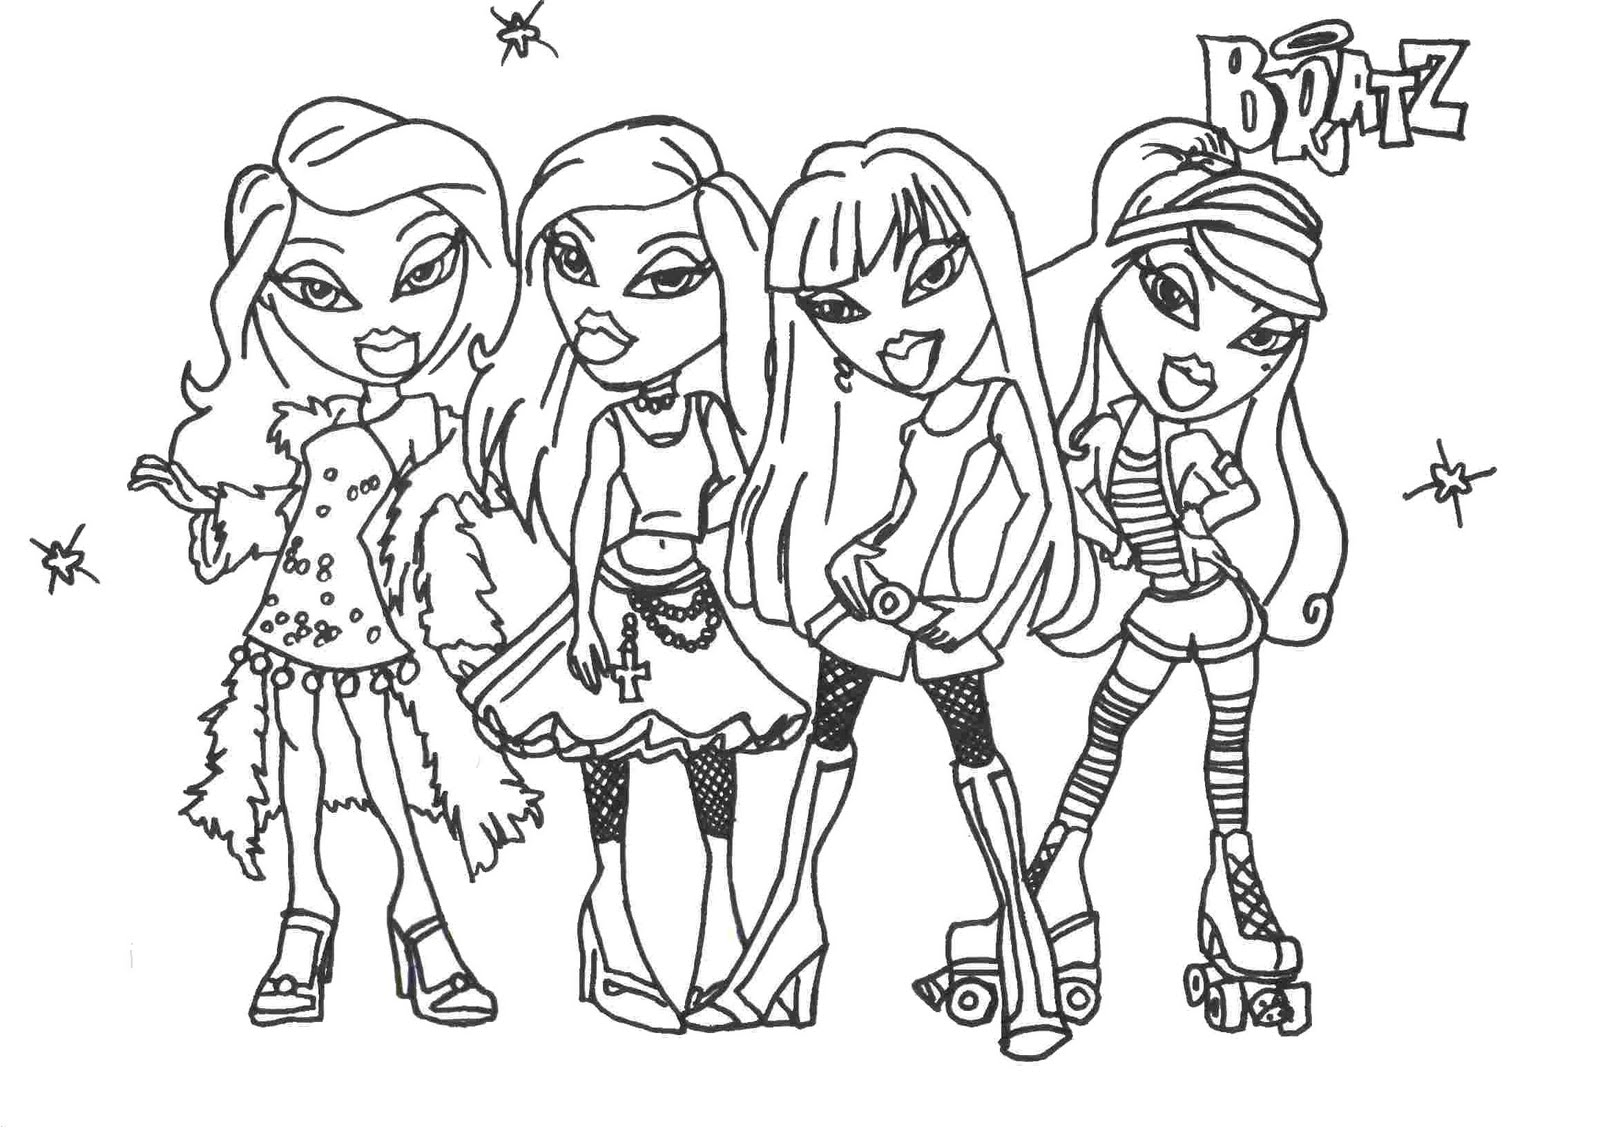 Bratz Coloring Pages Pdf : Bratz coloring pages to download and print for free